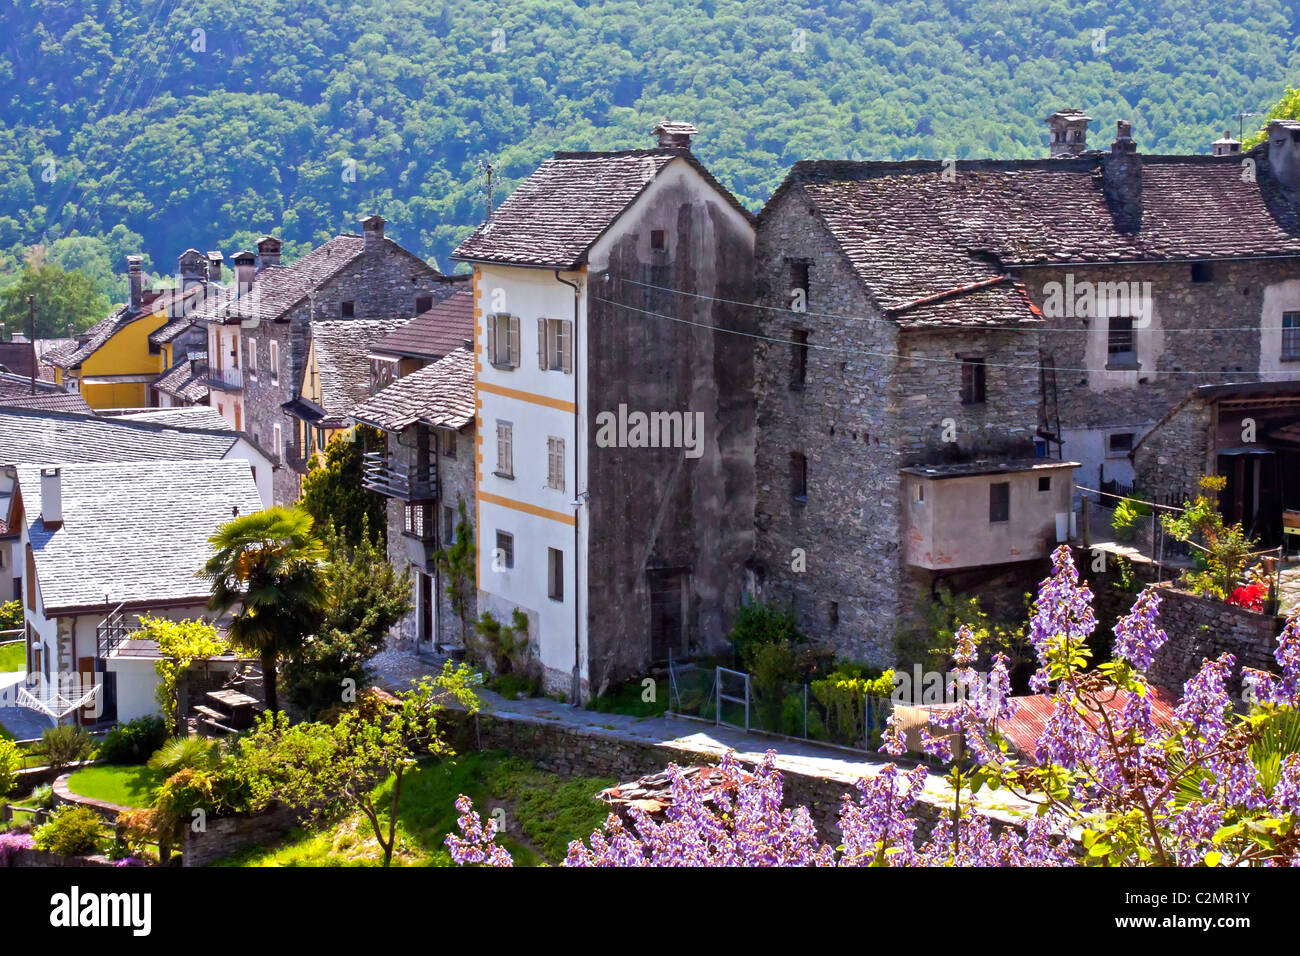 Valle Onsernone - Stock Image